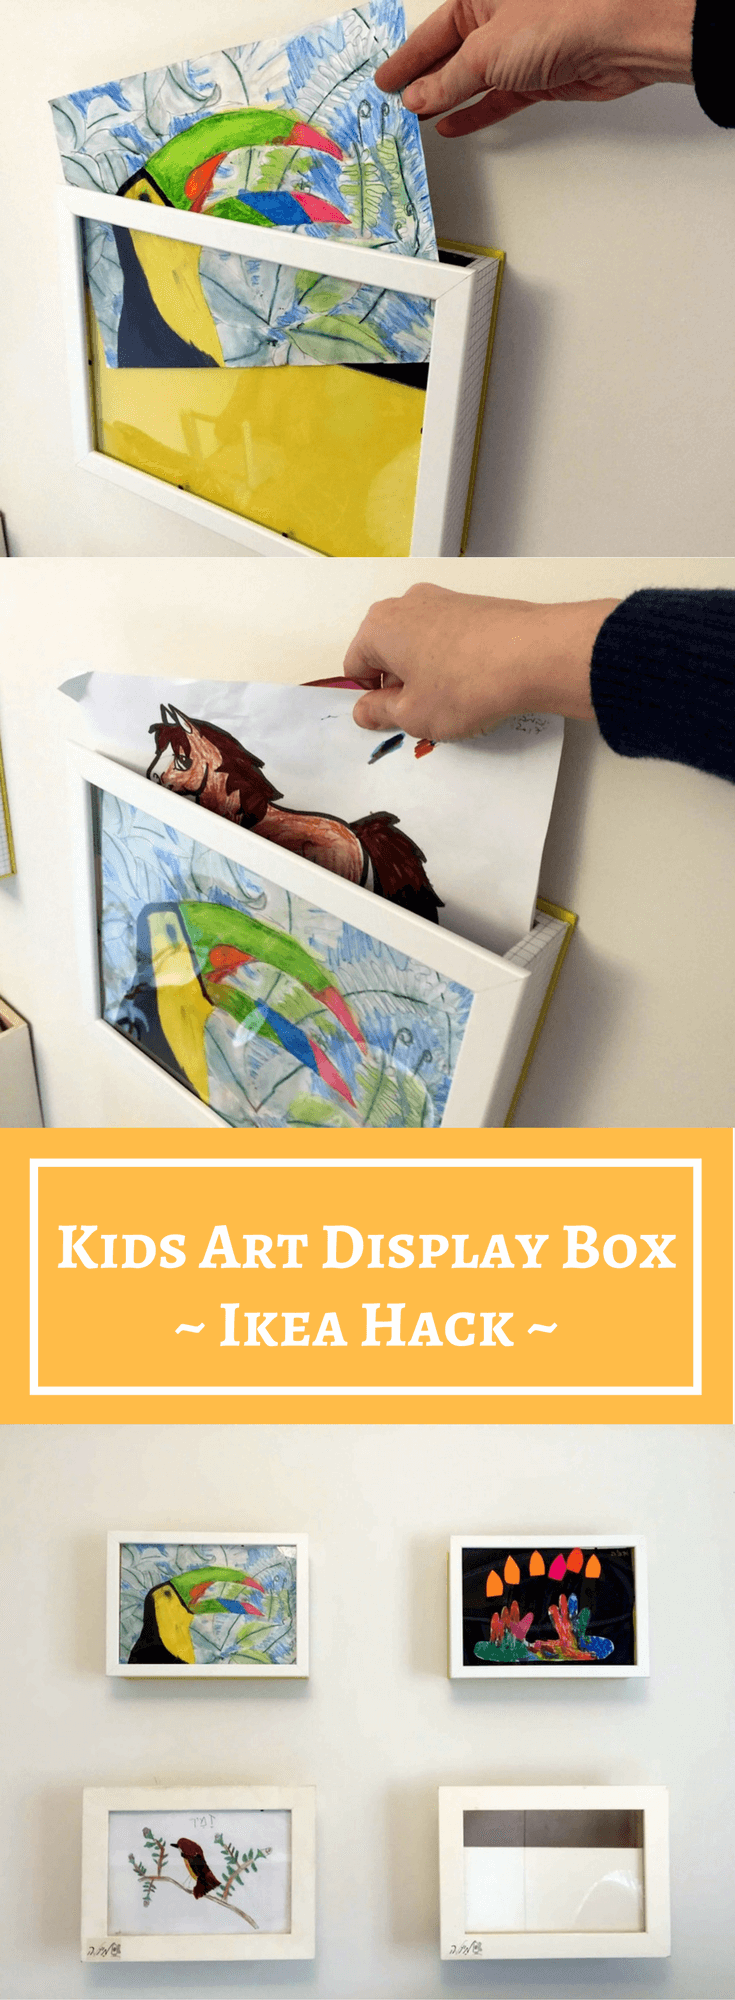 Kids art display box: 10 min hack to store & show your kids art ...